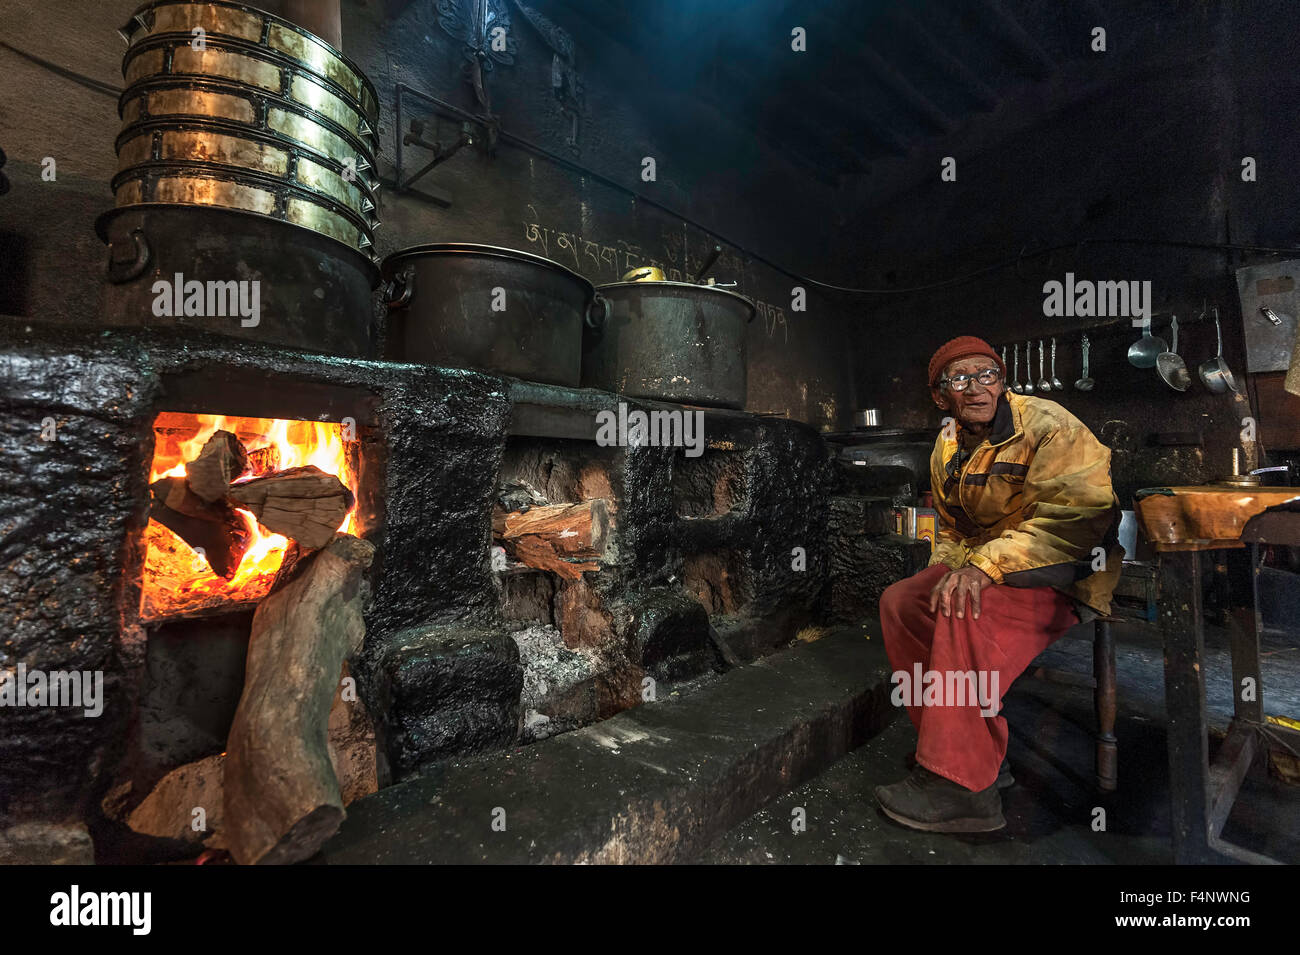 Old Monk is sitting in kitchen next to the fire. - Stock Image